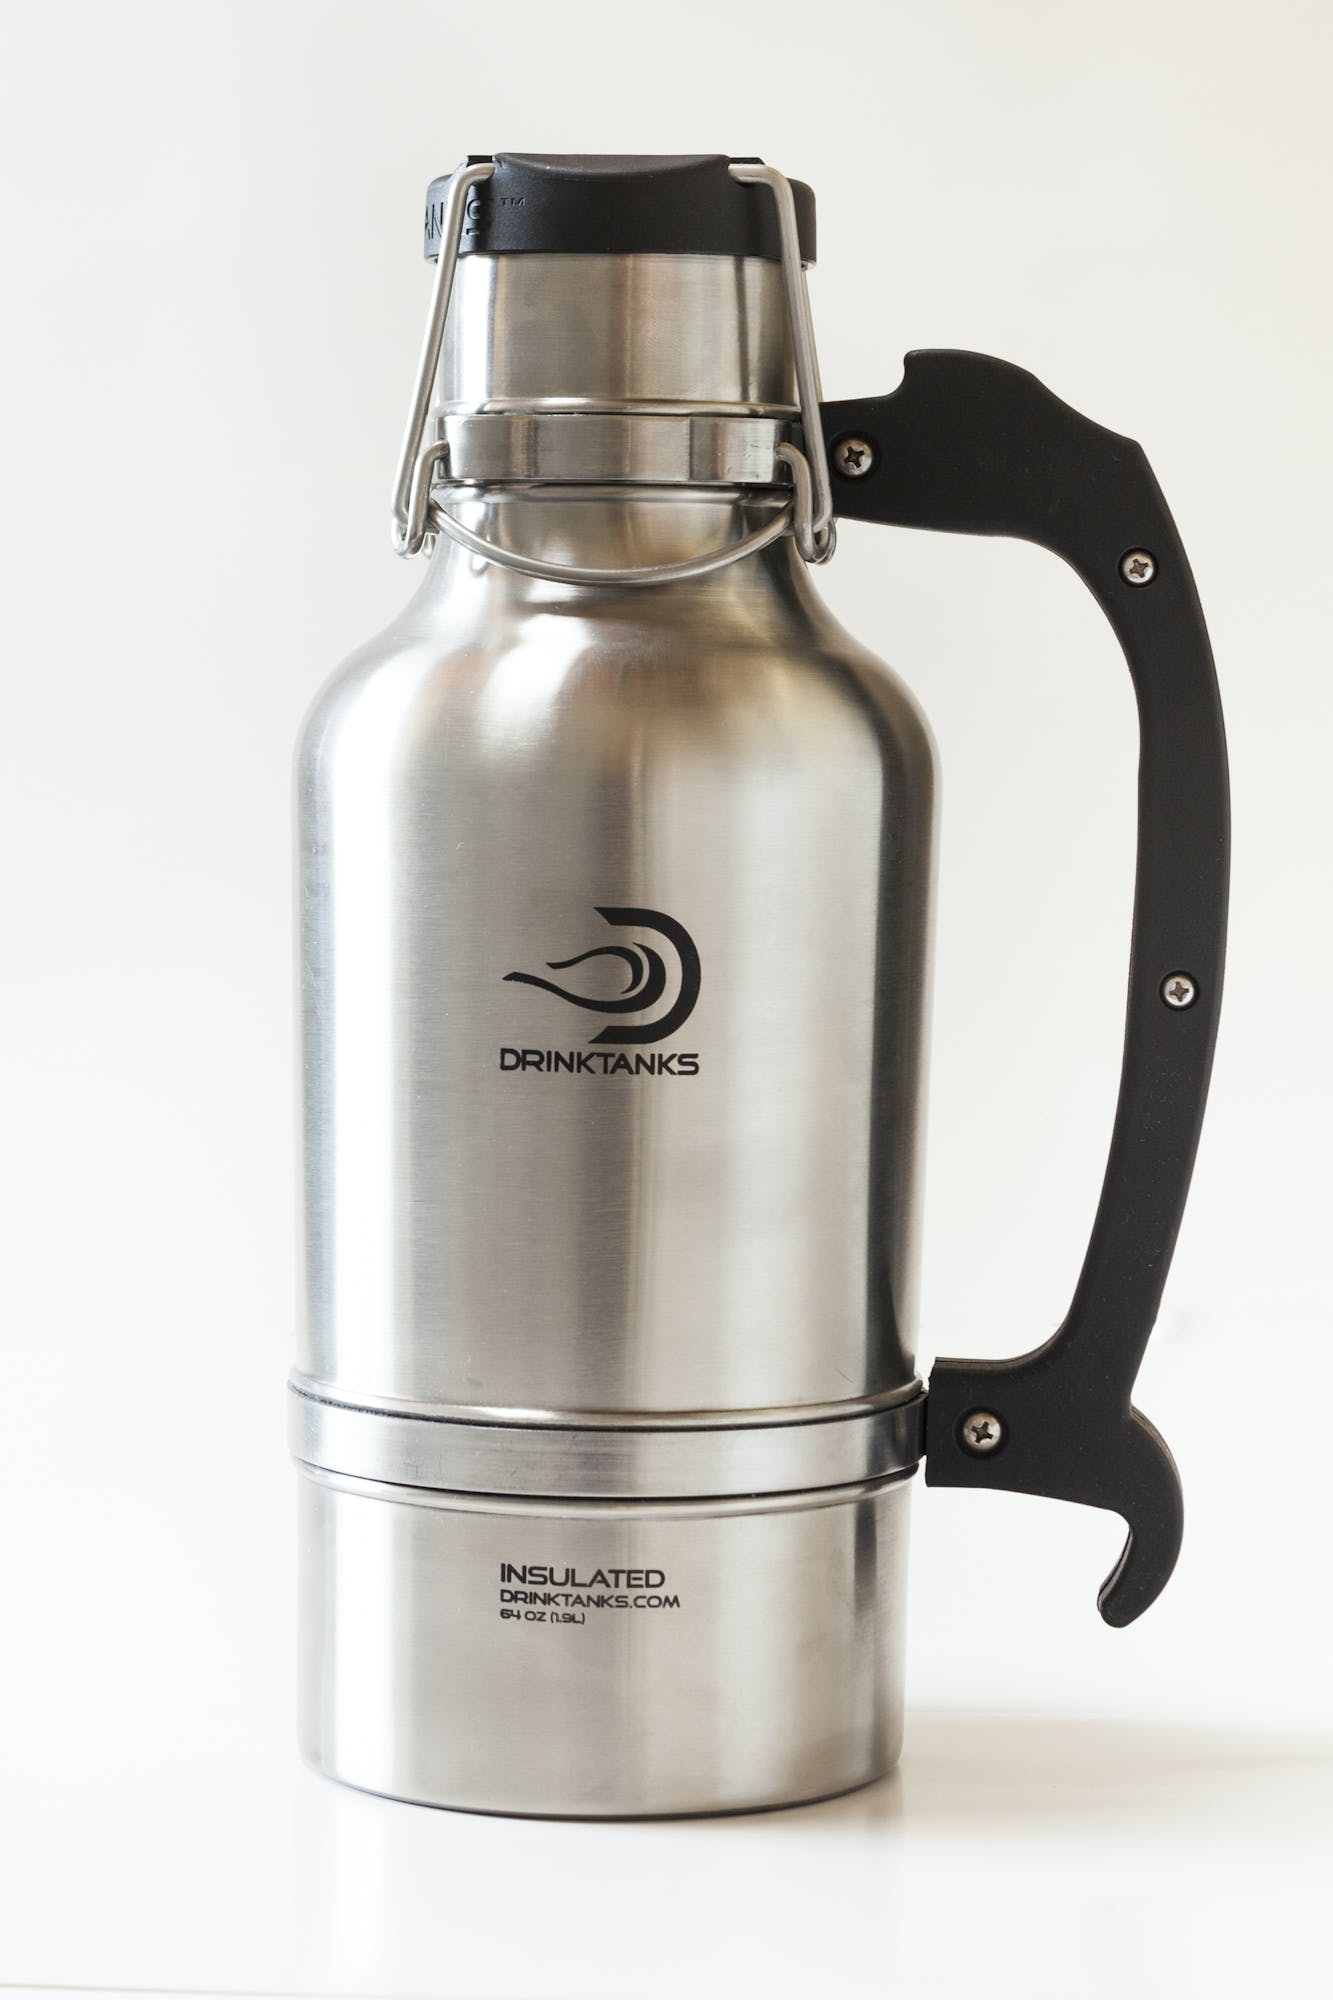 DrinkTanks Growler (steel) - Enjoy beer exactly as it was intended. Cold. Fresh. Carbonated. (Steel) Growler sold by Drink Tanks